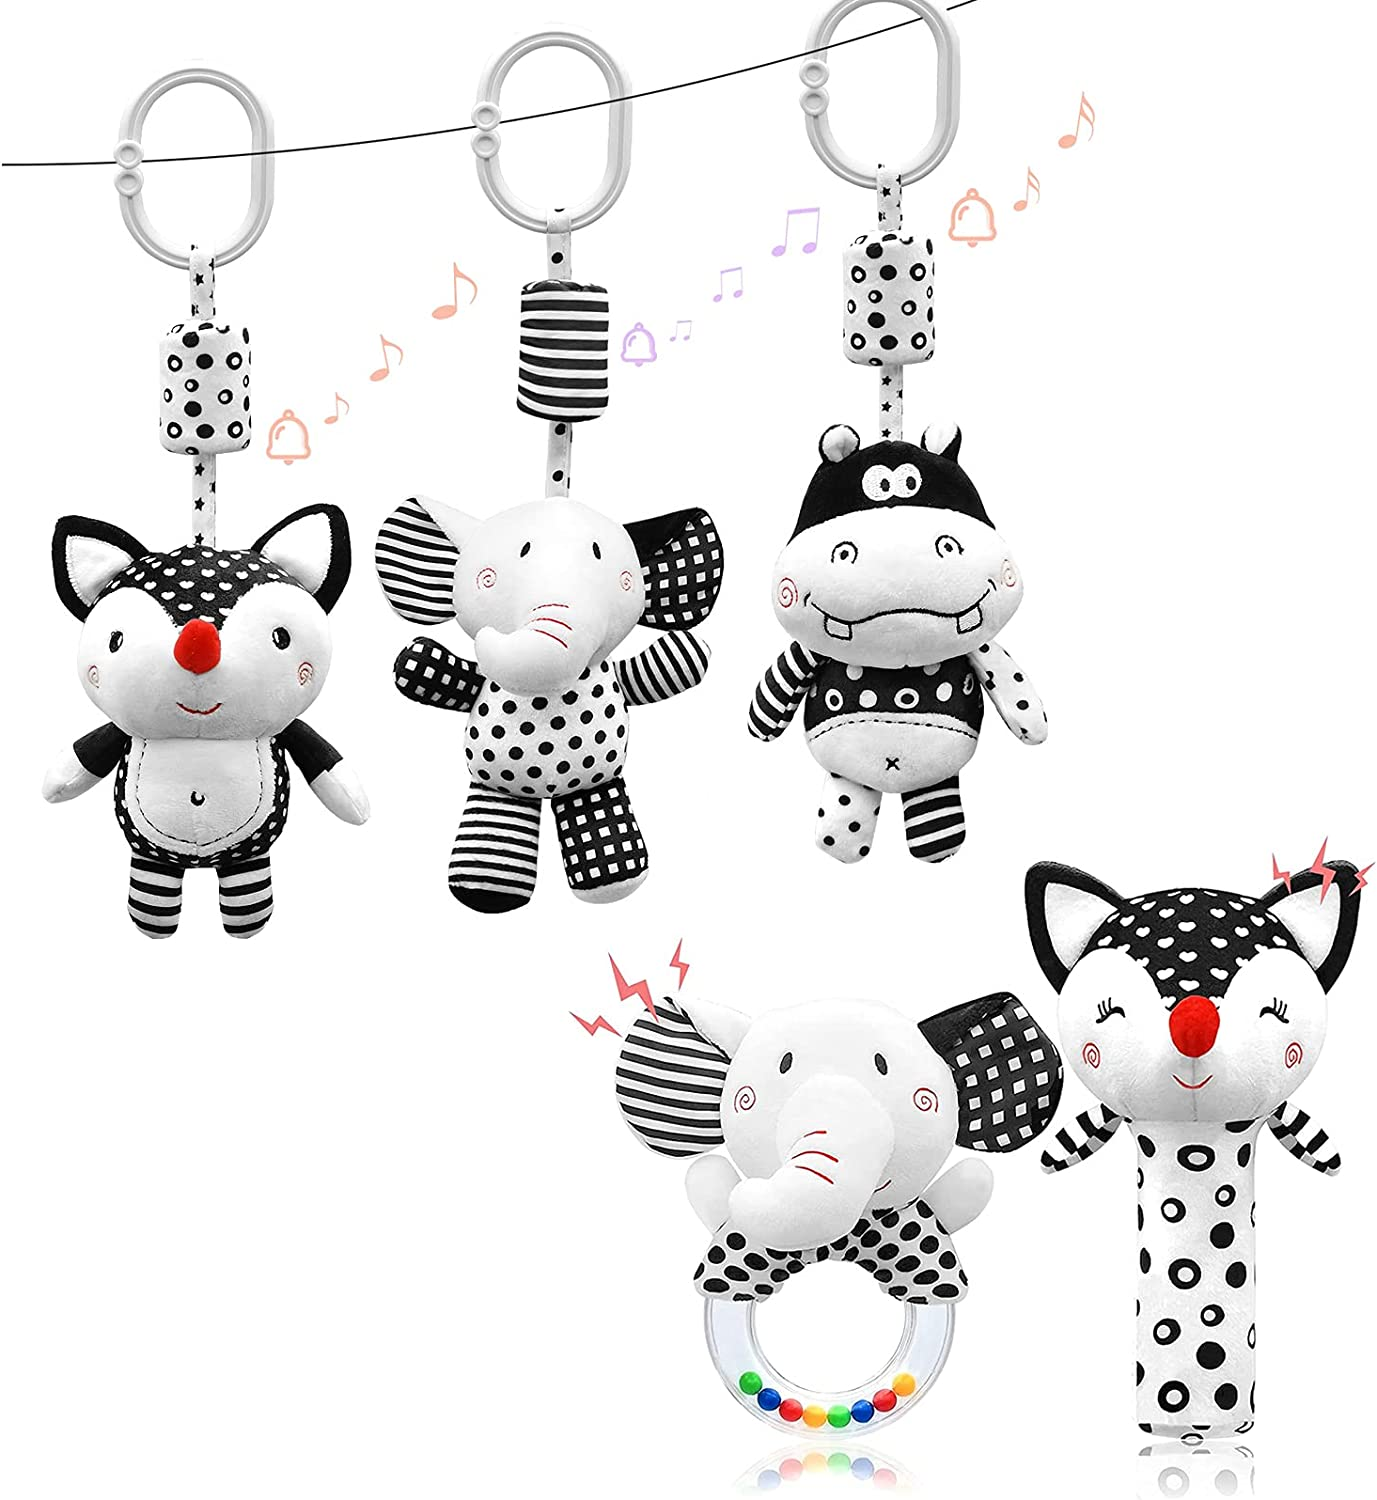 Euyecety Hanging Rattles Toys Black Max 68% OFF and mart Toy Stroller 3 White Pa